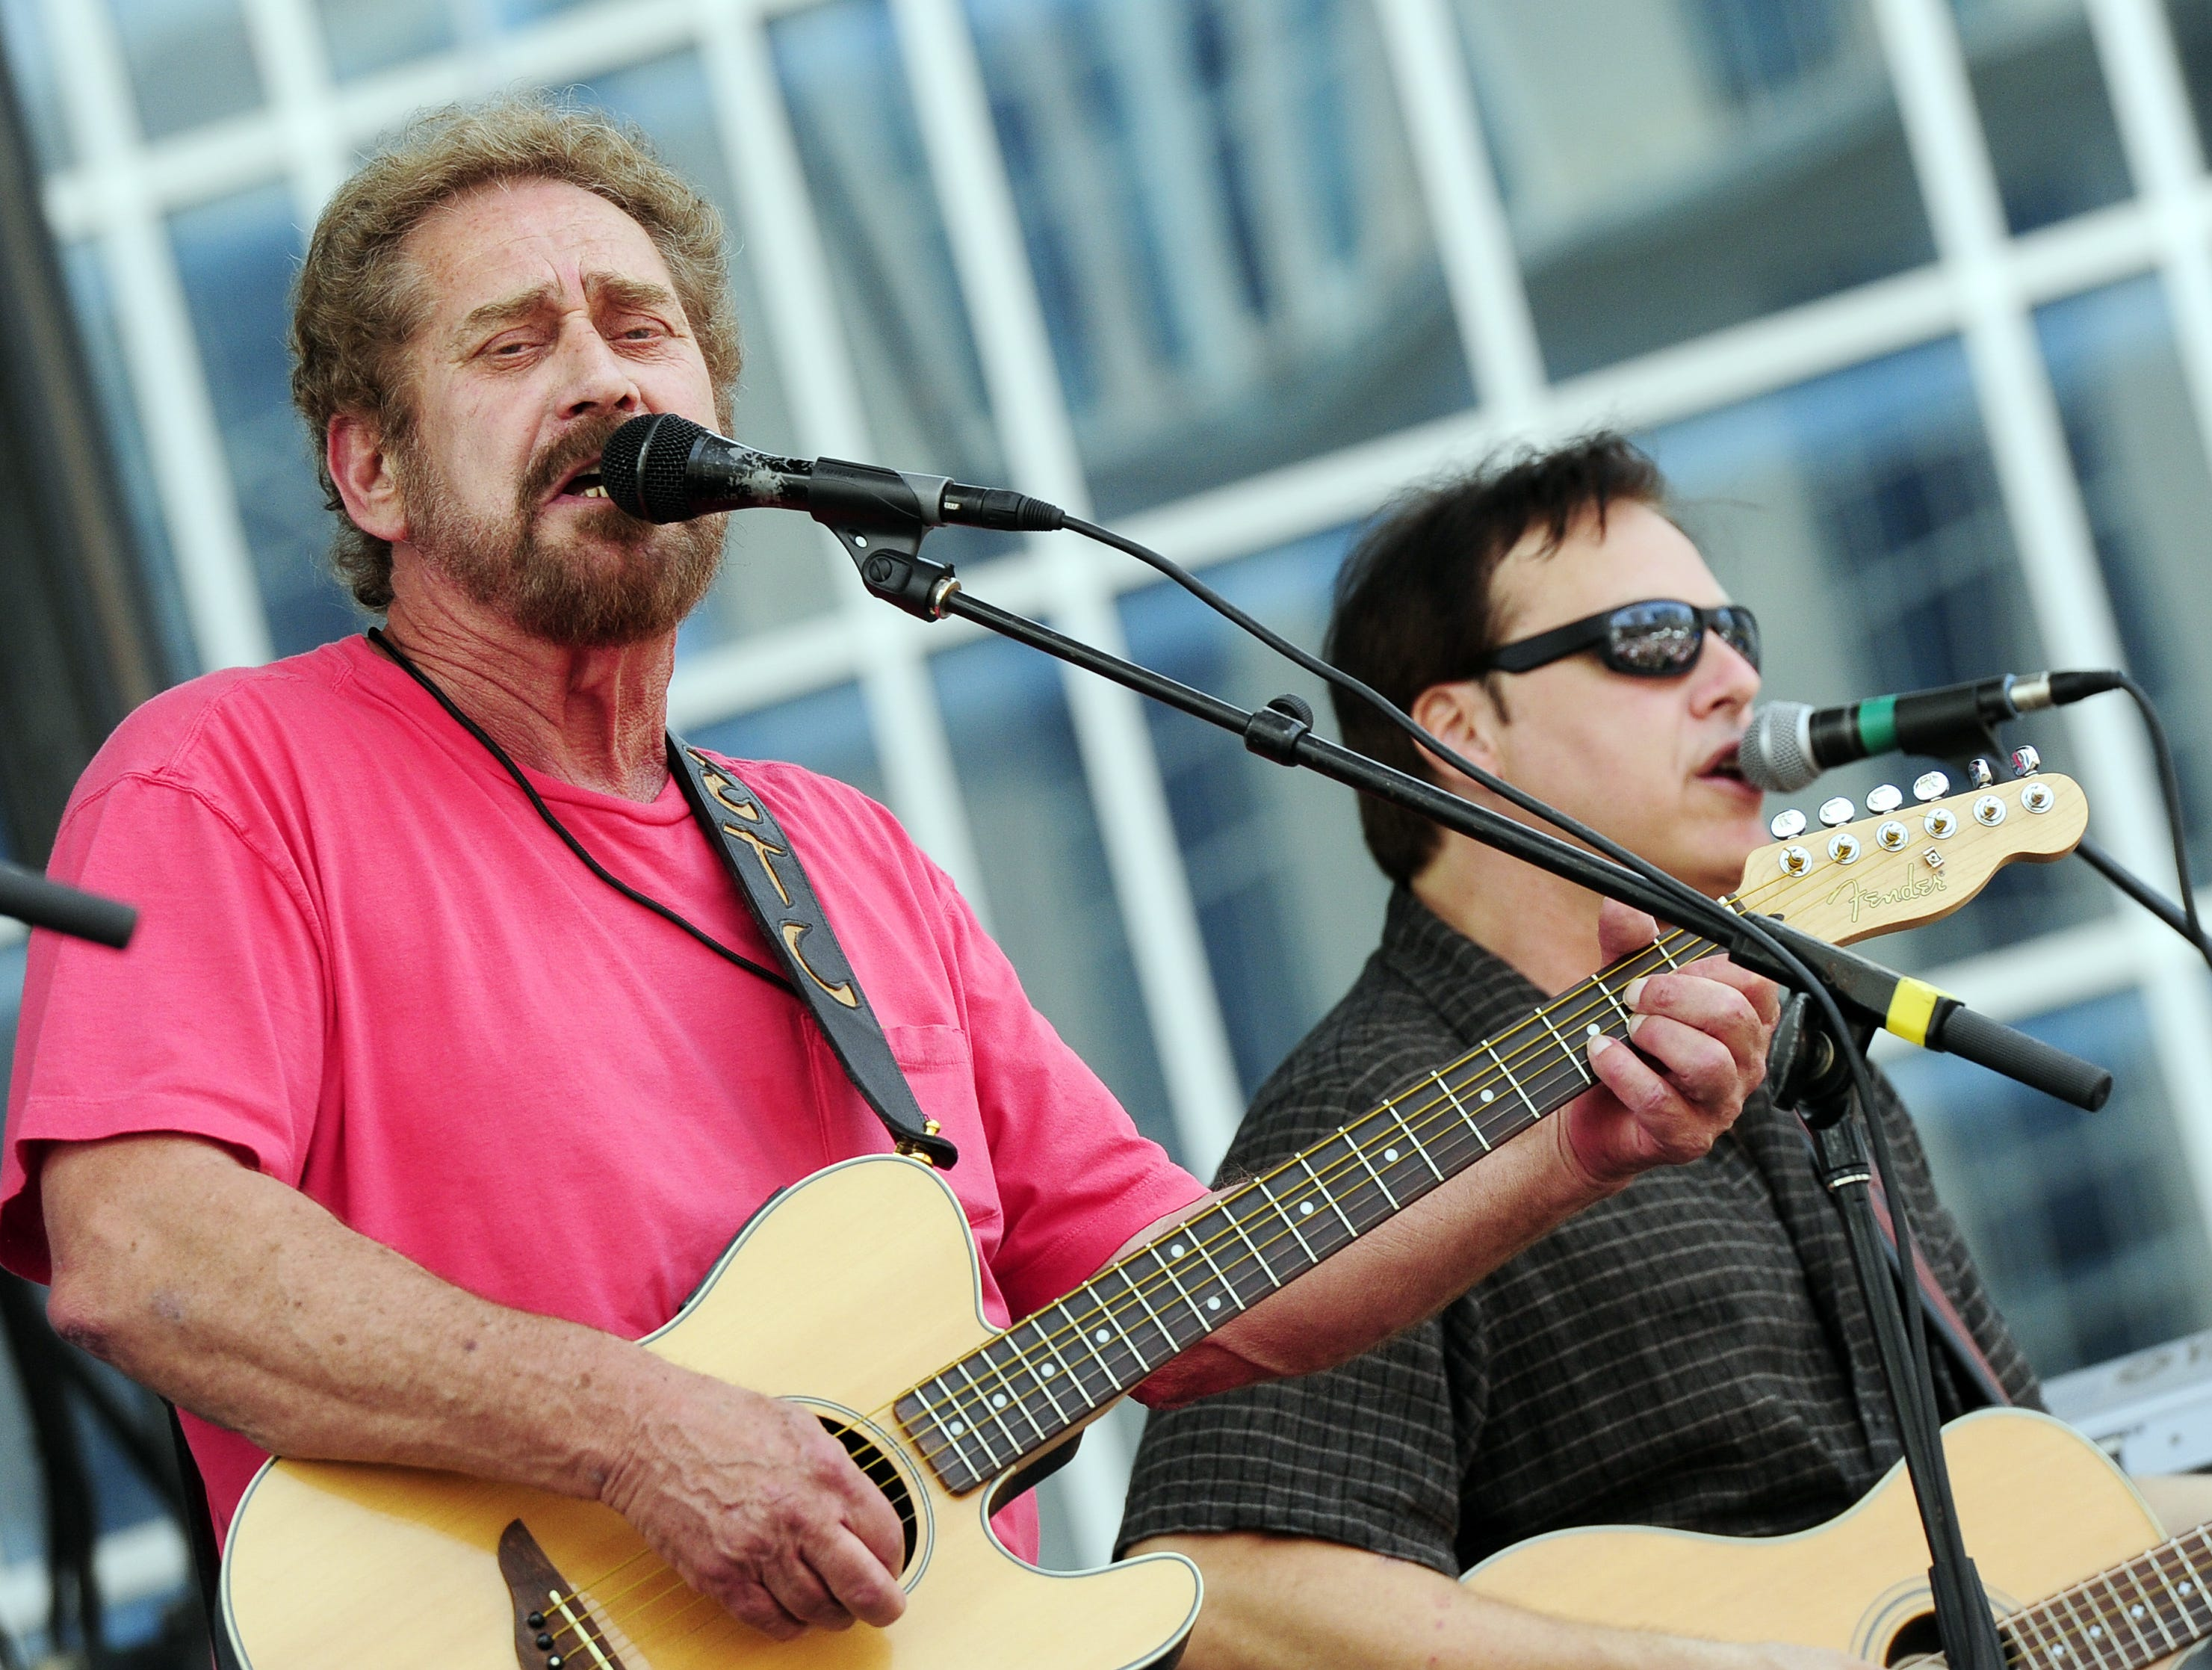 Earl Thomas Conley, left, performs during the CMA Music Festival in downtown Nashville on June 10, 2011.